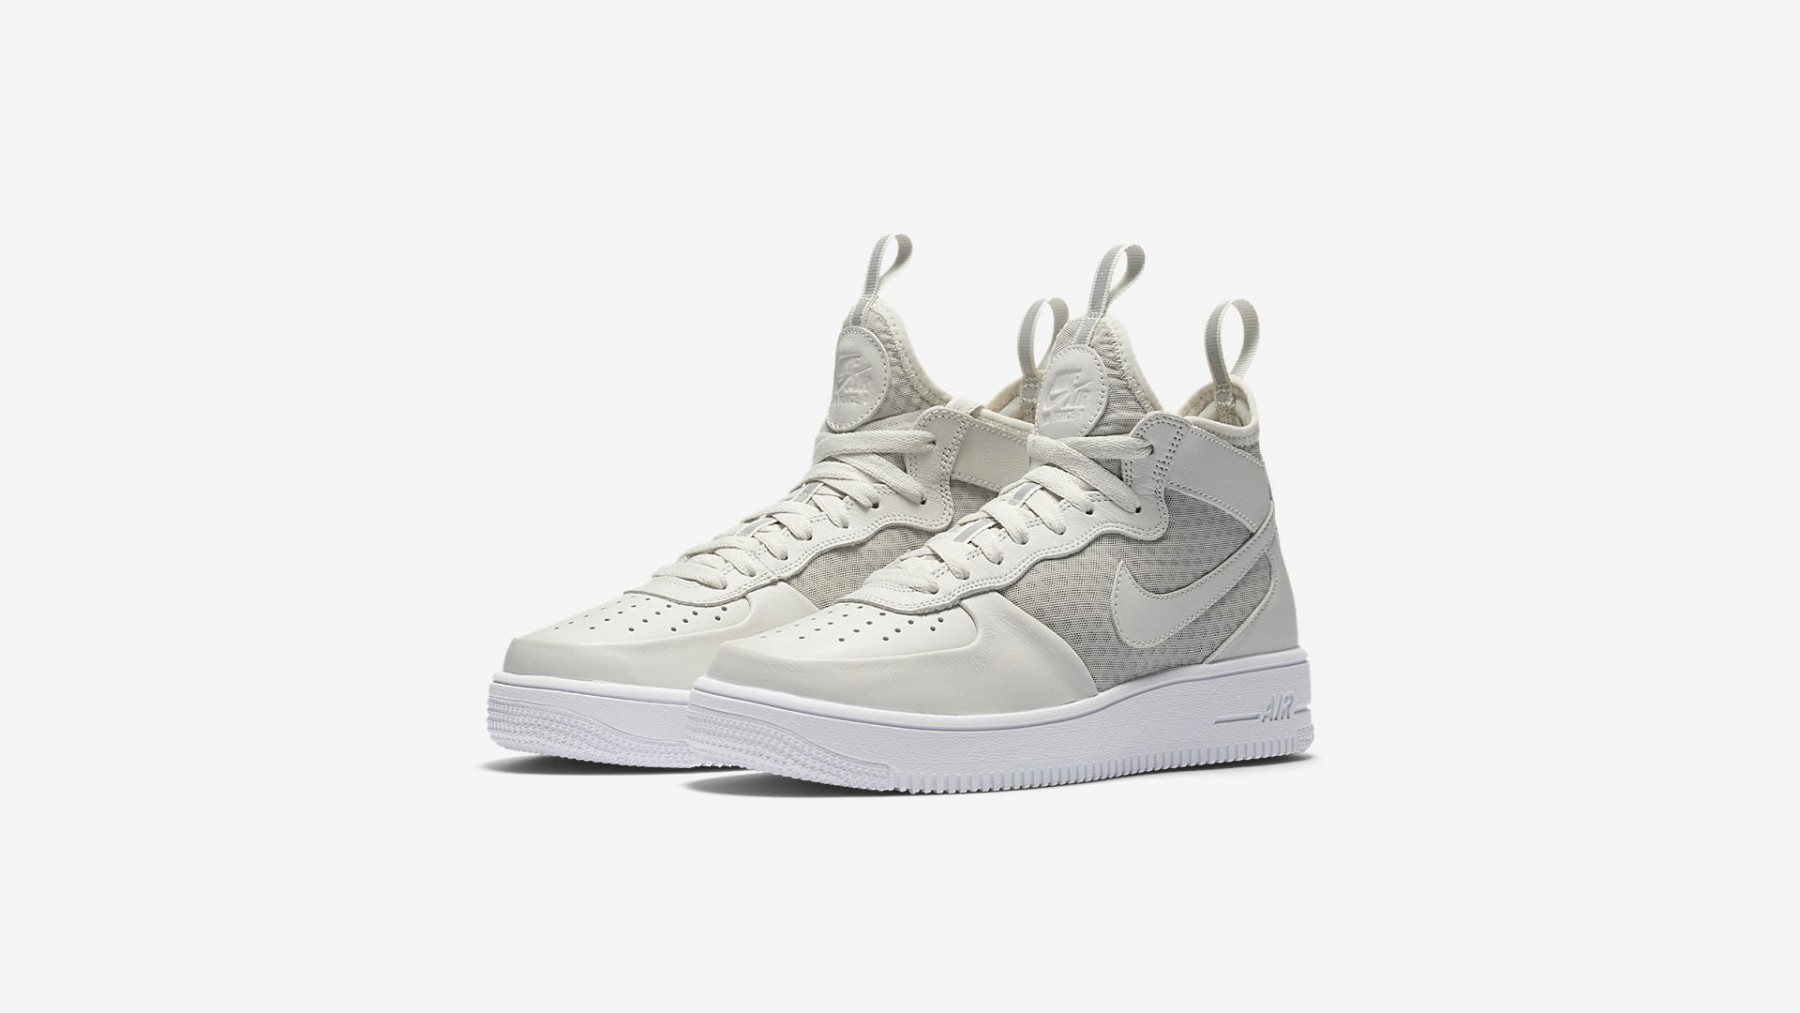 Sneaker Watch: Nike Air Force 1 UltraForce Mid